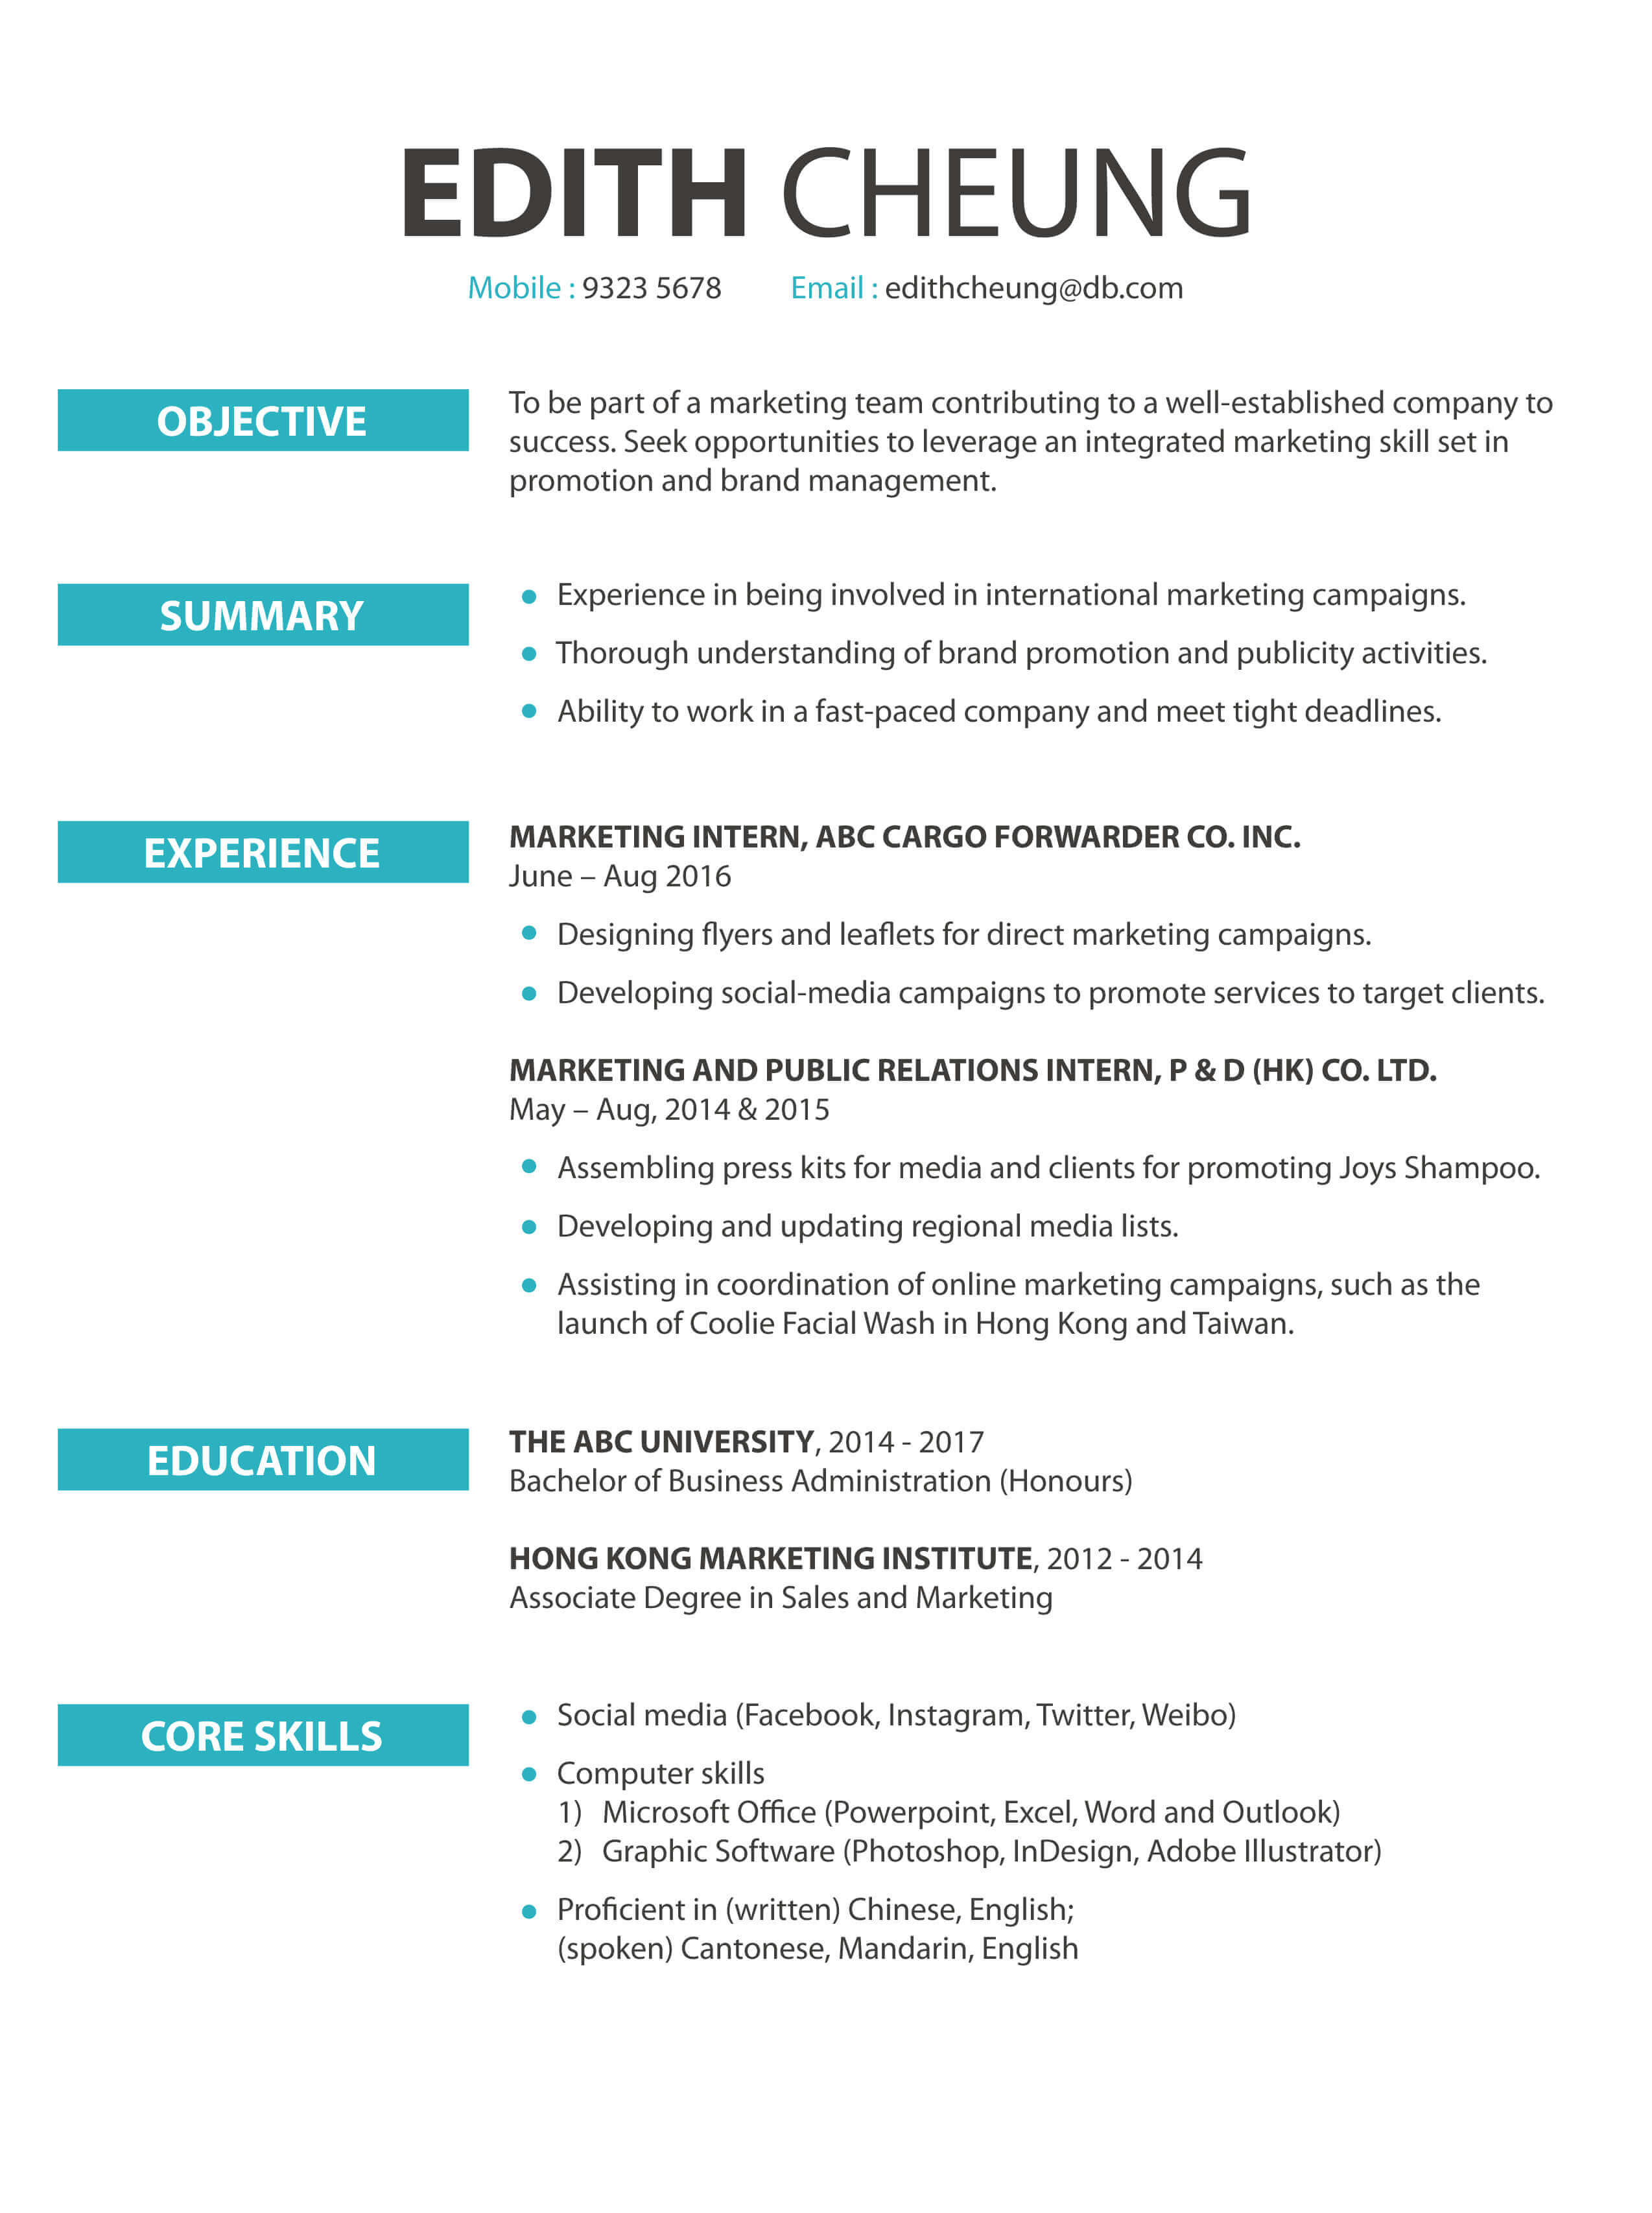 CV cover letter - Marketing / Public Relations